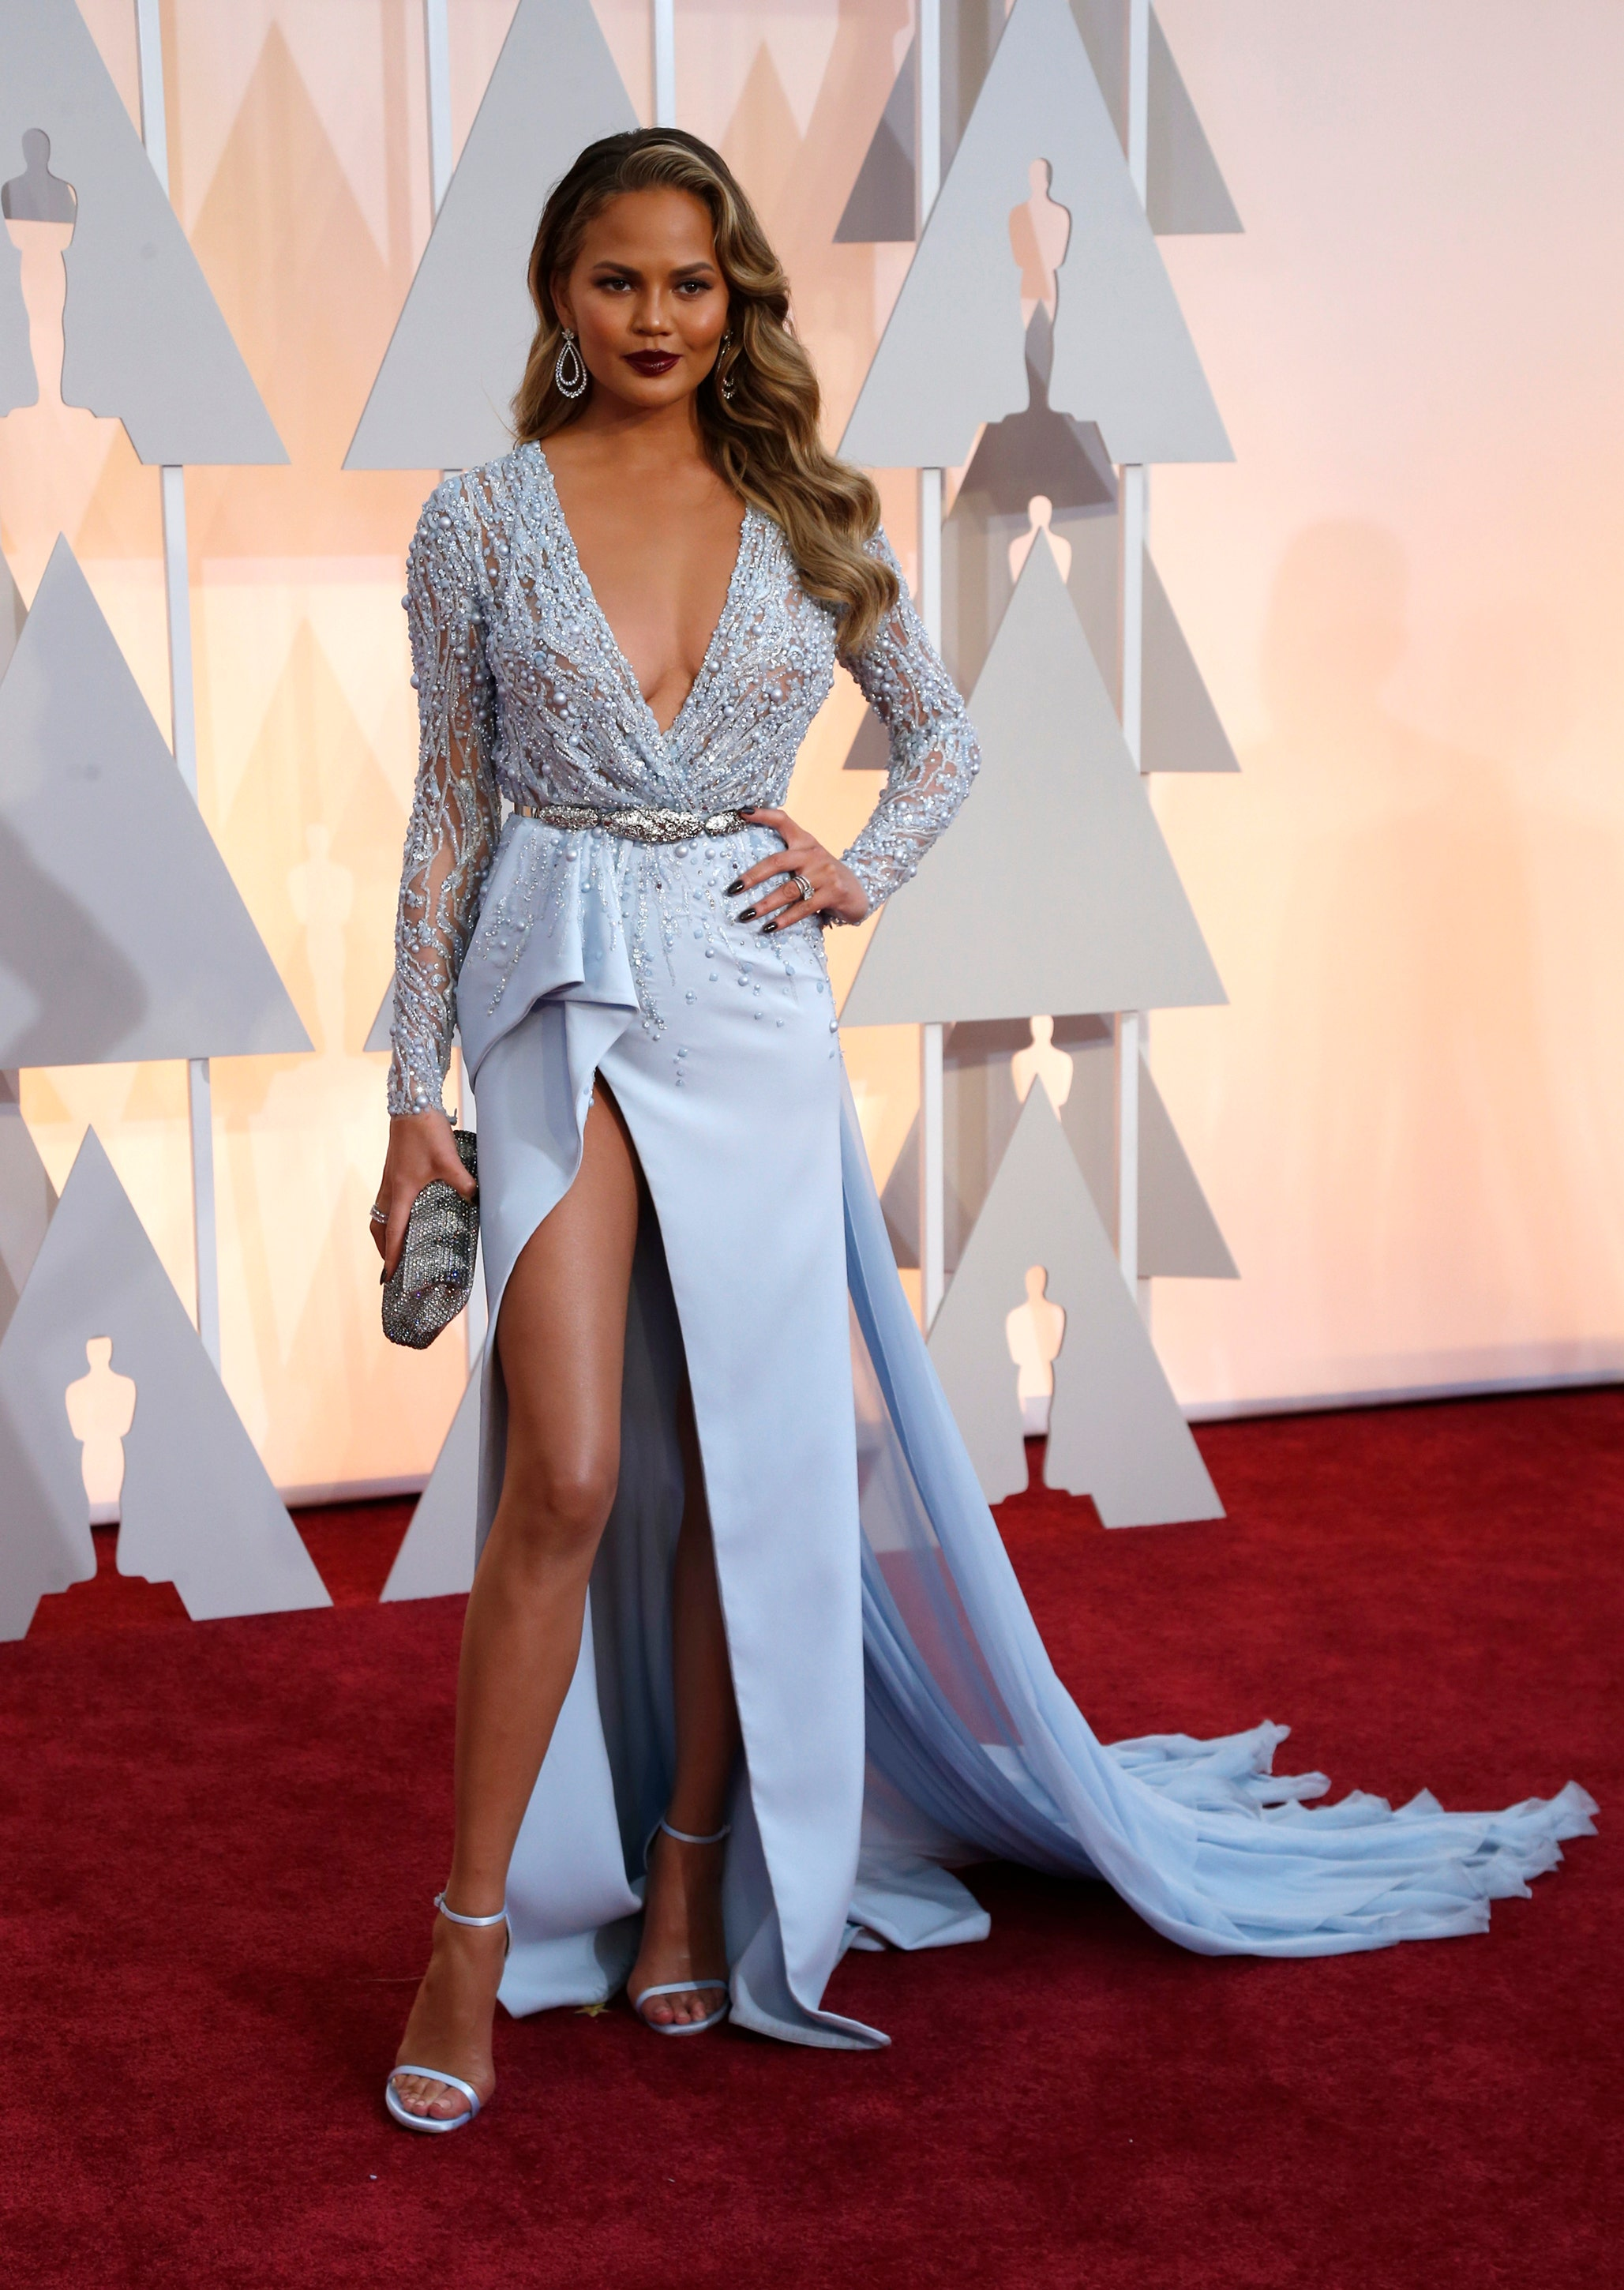 Celebrity outfit disasters